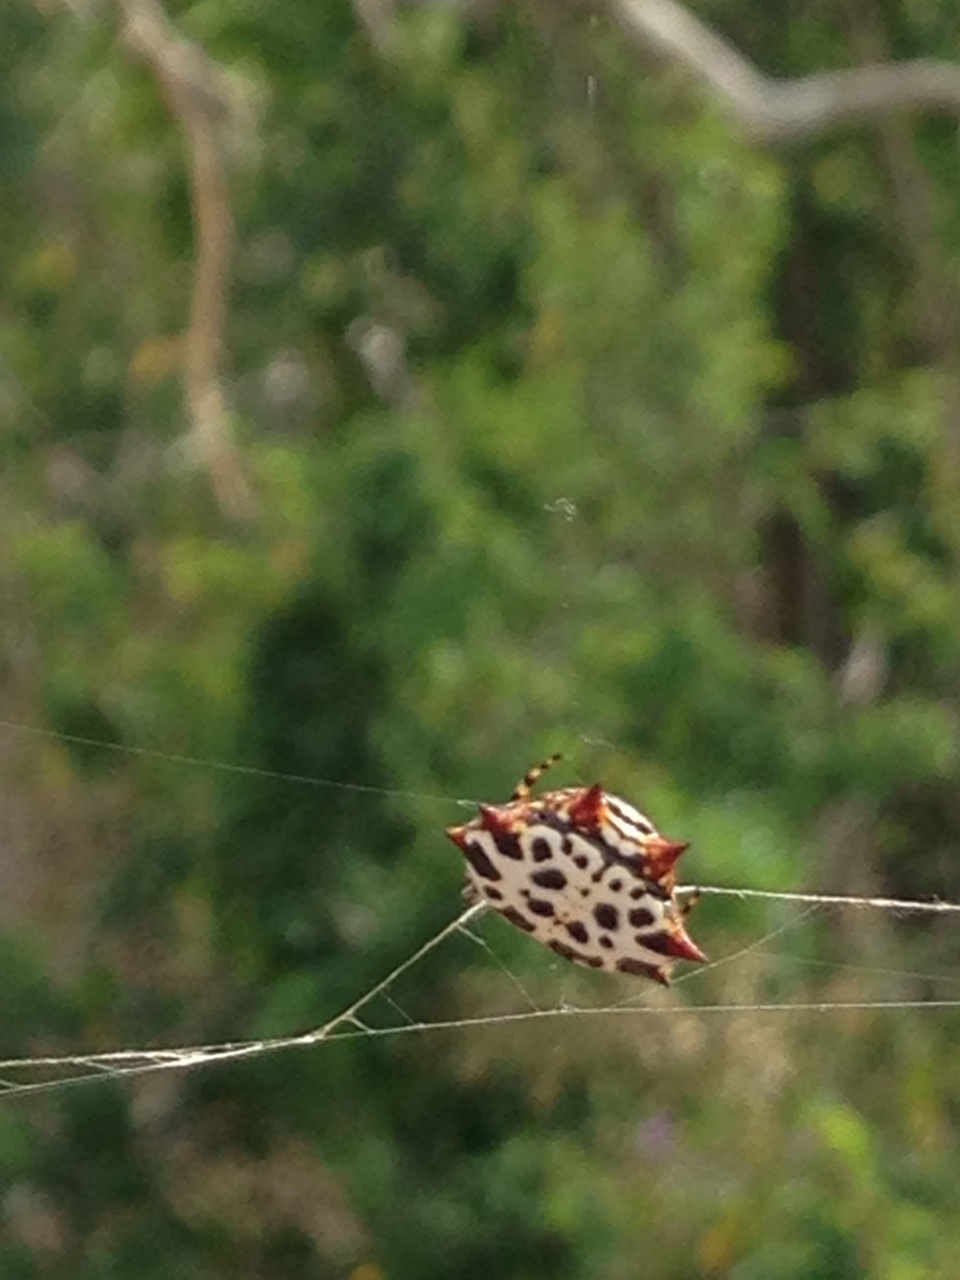 Spiny-backed orb weaver spider. They're everywhere in Los Cabos!